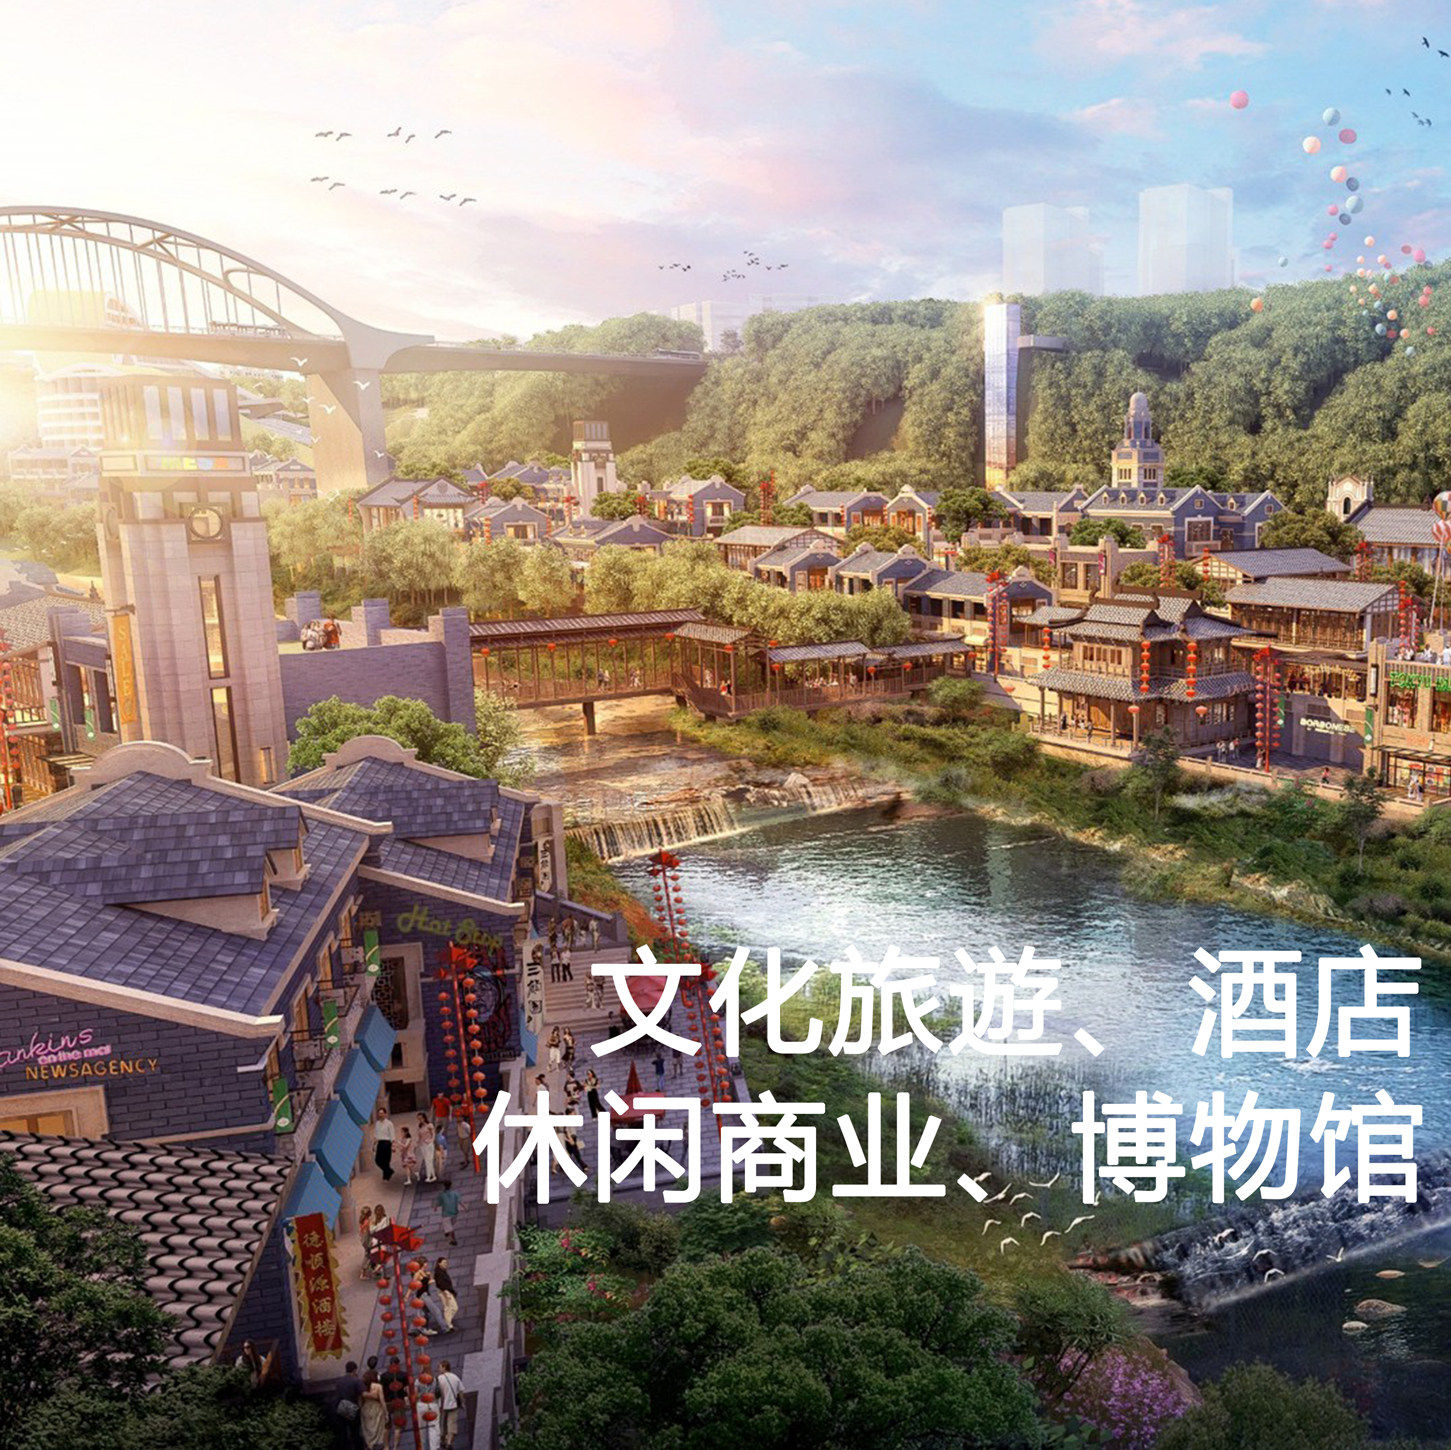 Culture & Hospitality Tourist, Hotel, Leisure Commercial, Museum Guangan, Sichuan, China